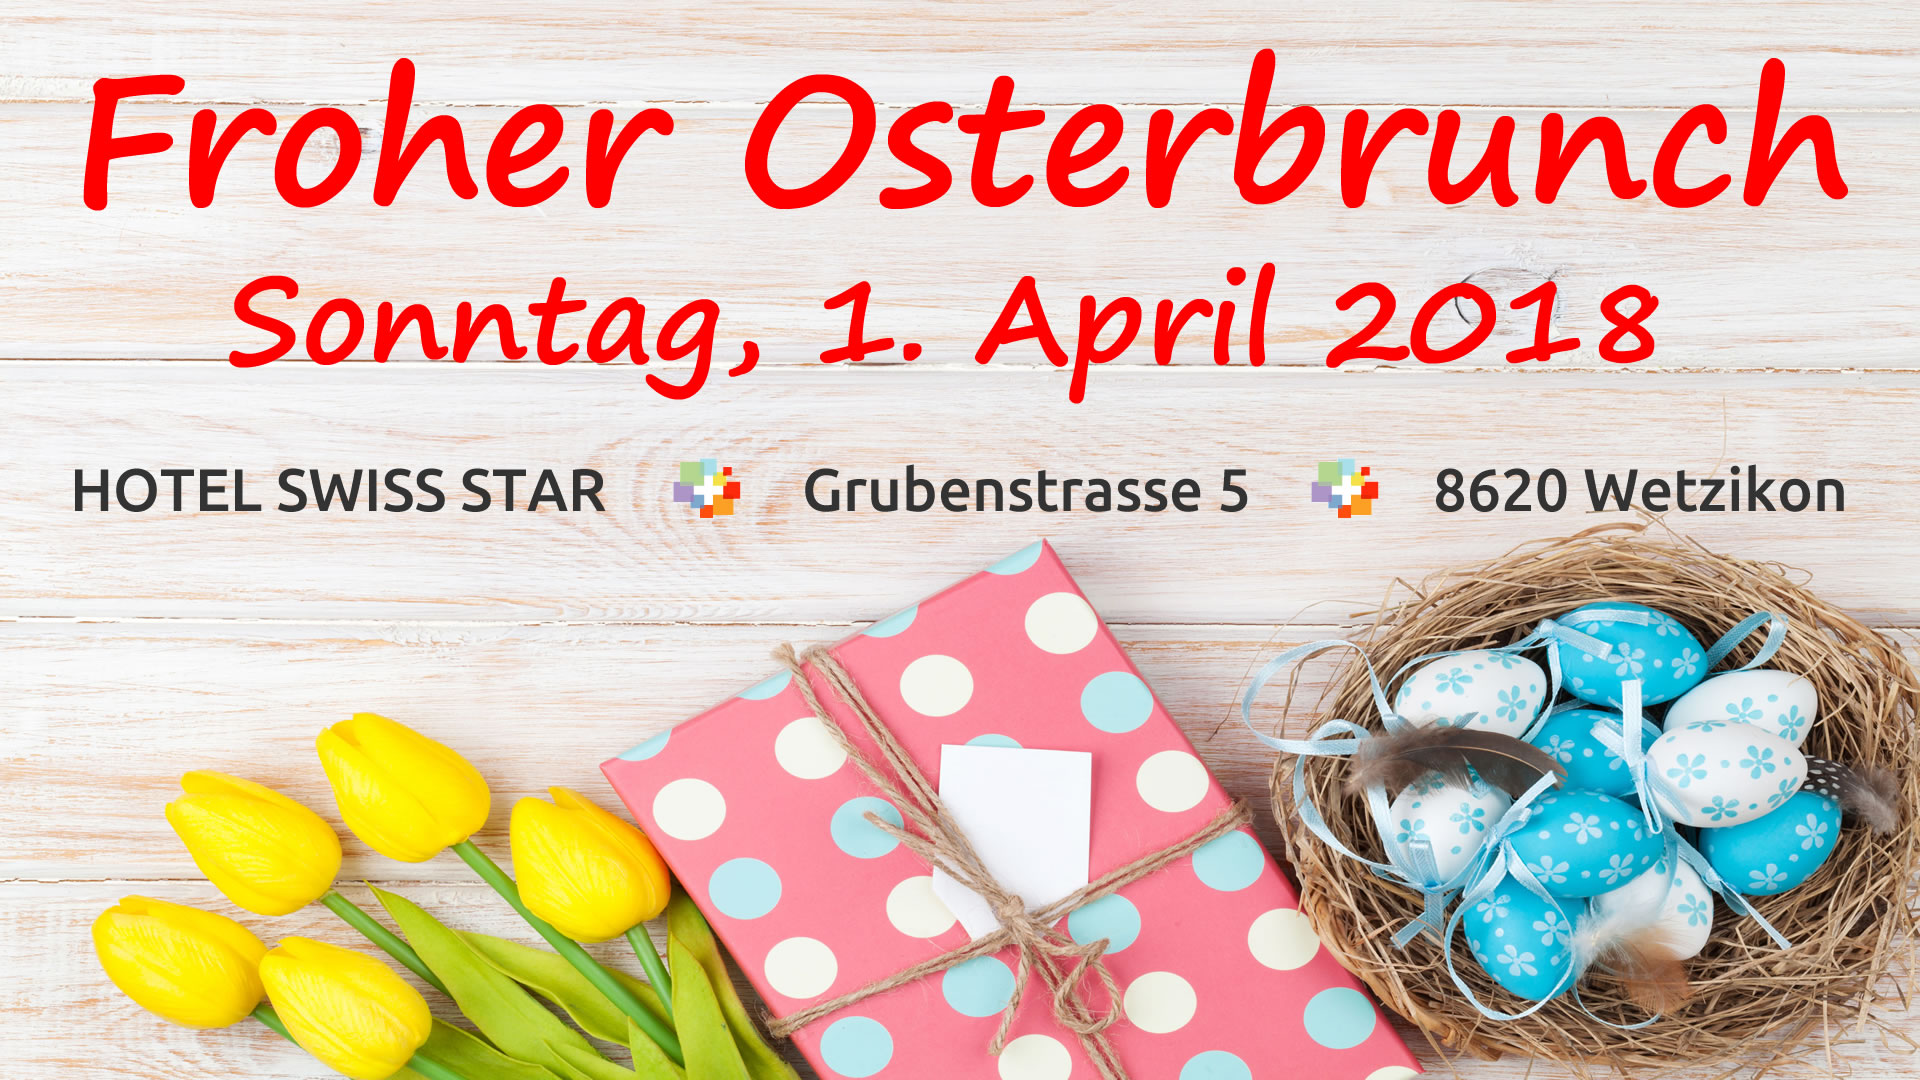 Froher Osterbrunch